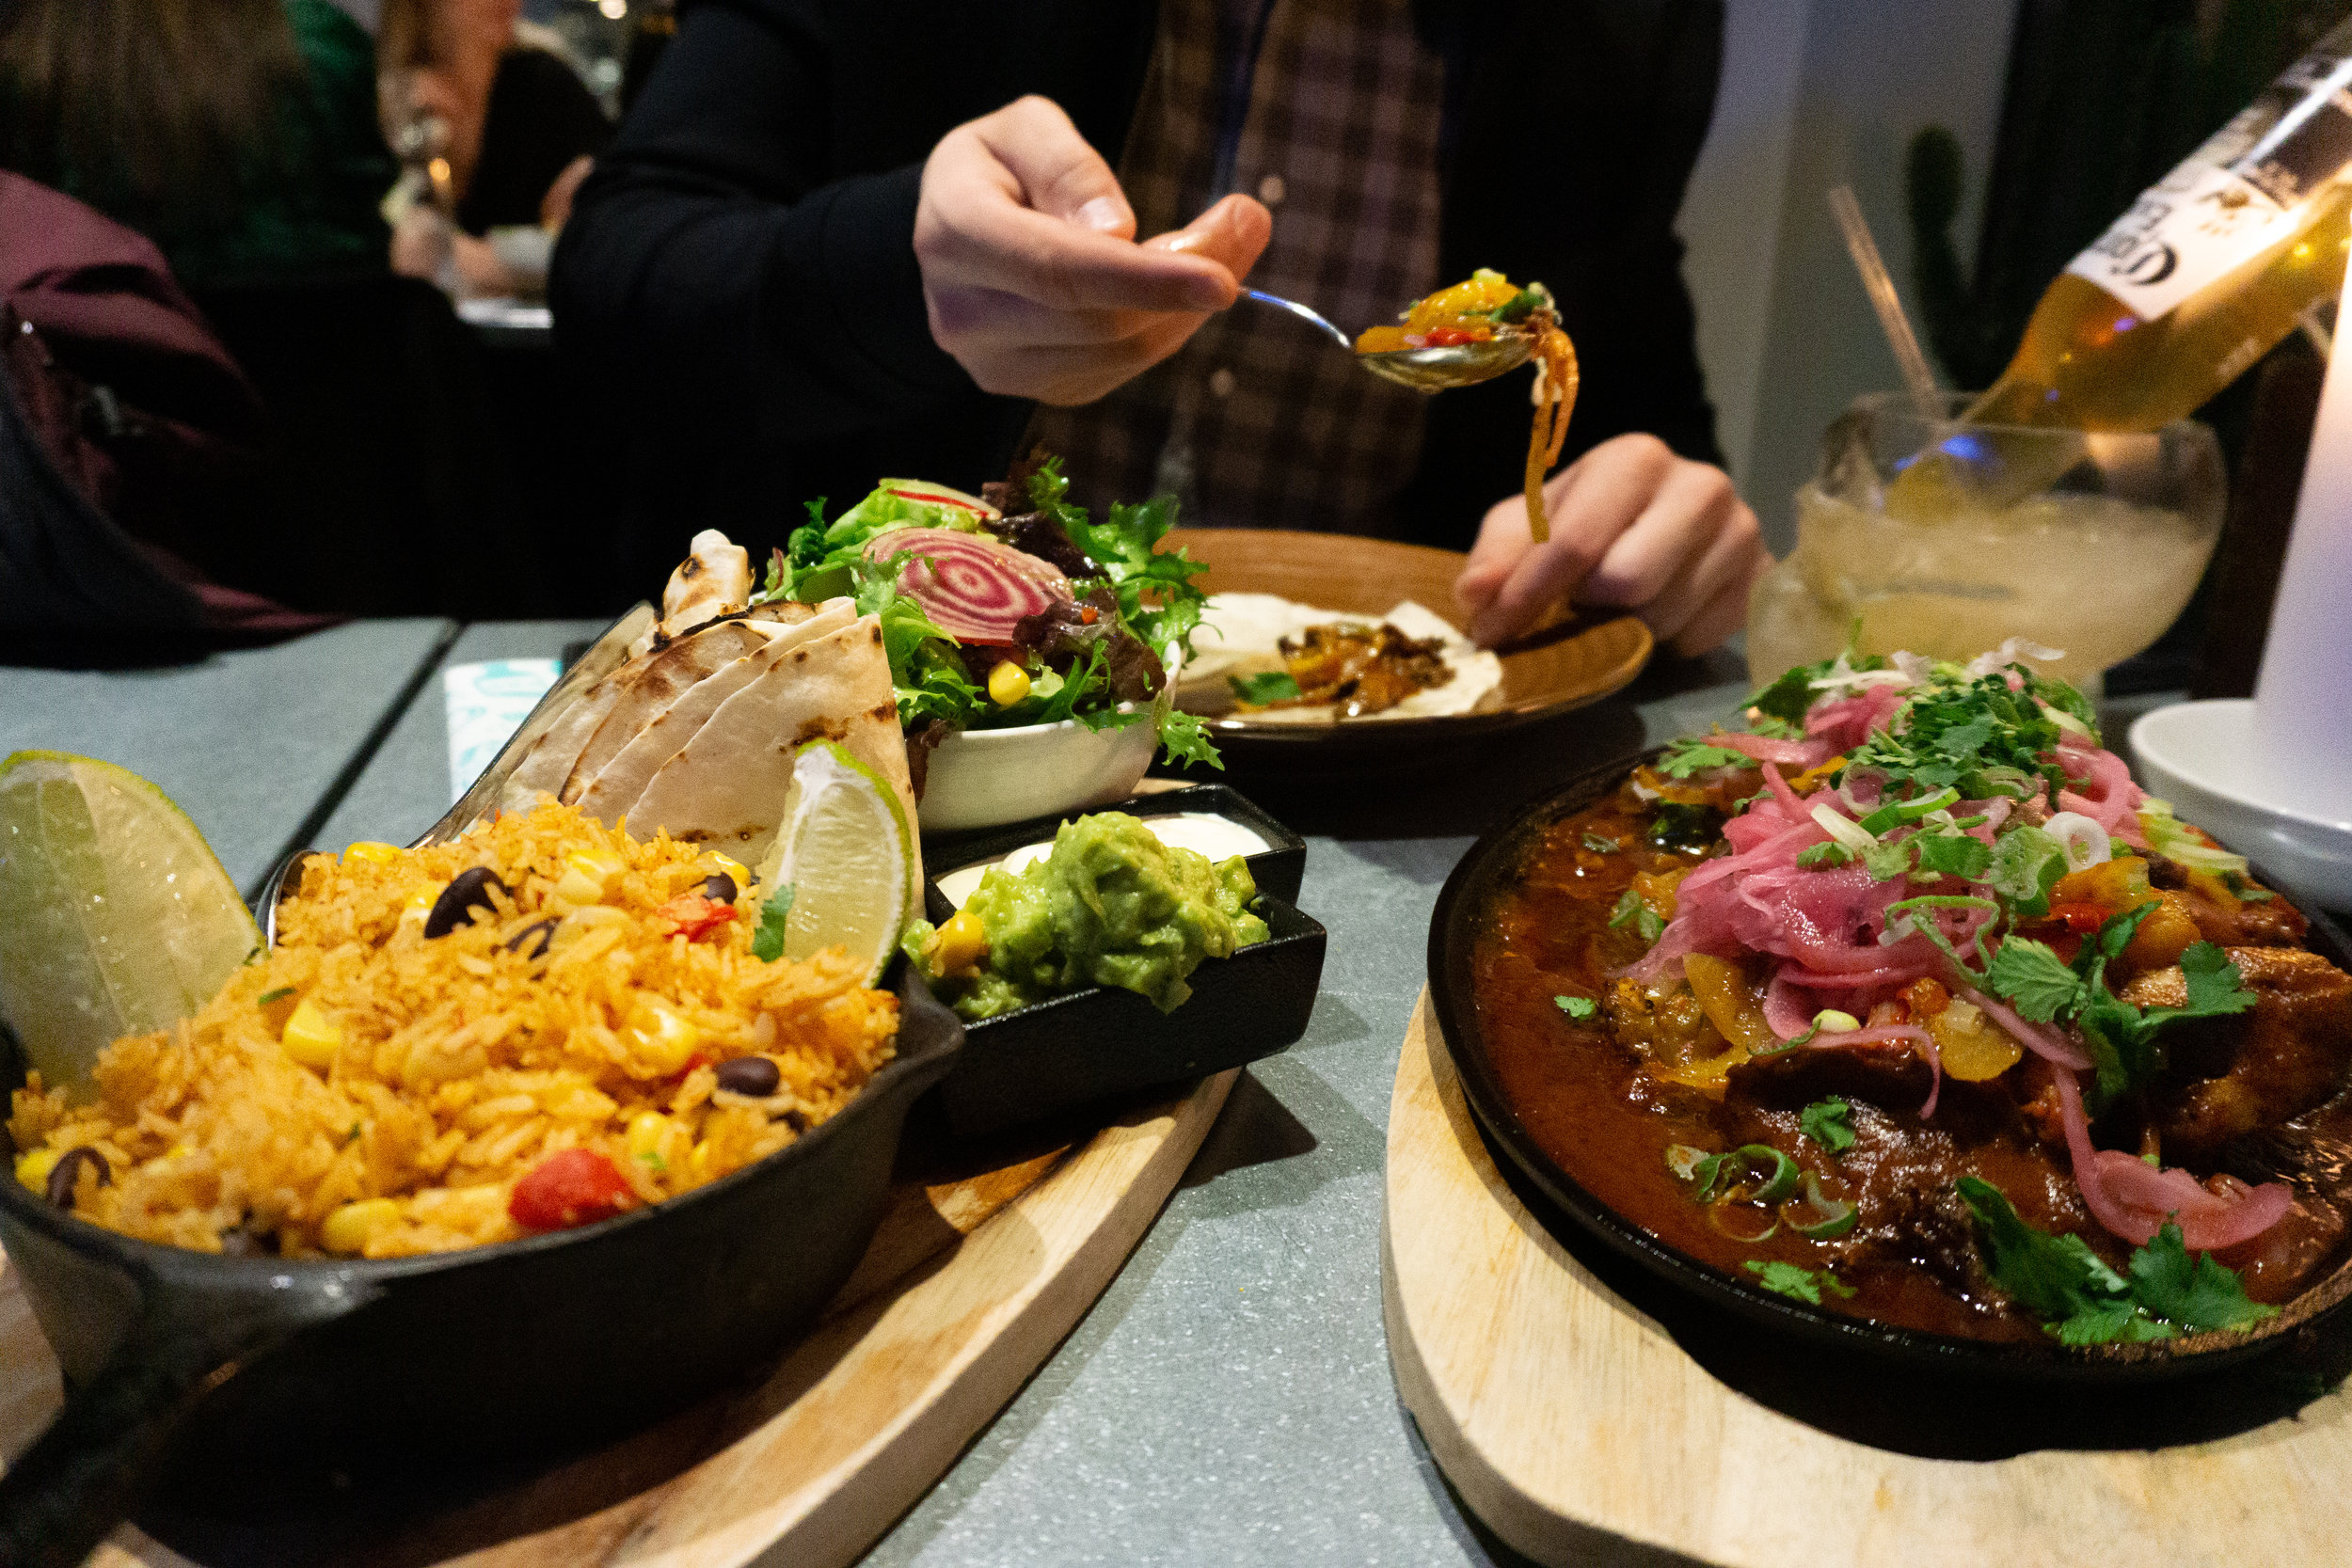 The Best Mexican Cuisine in Malmö - Eatery Social Taquería | HallAroundtheWorld